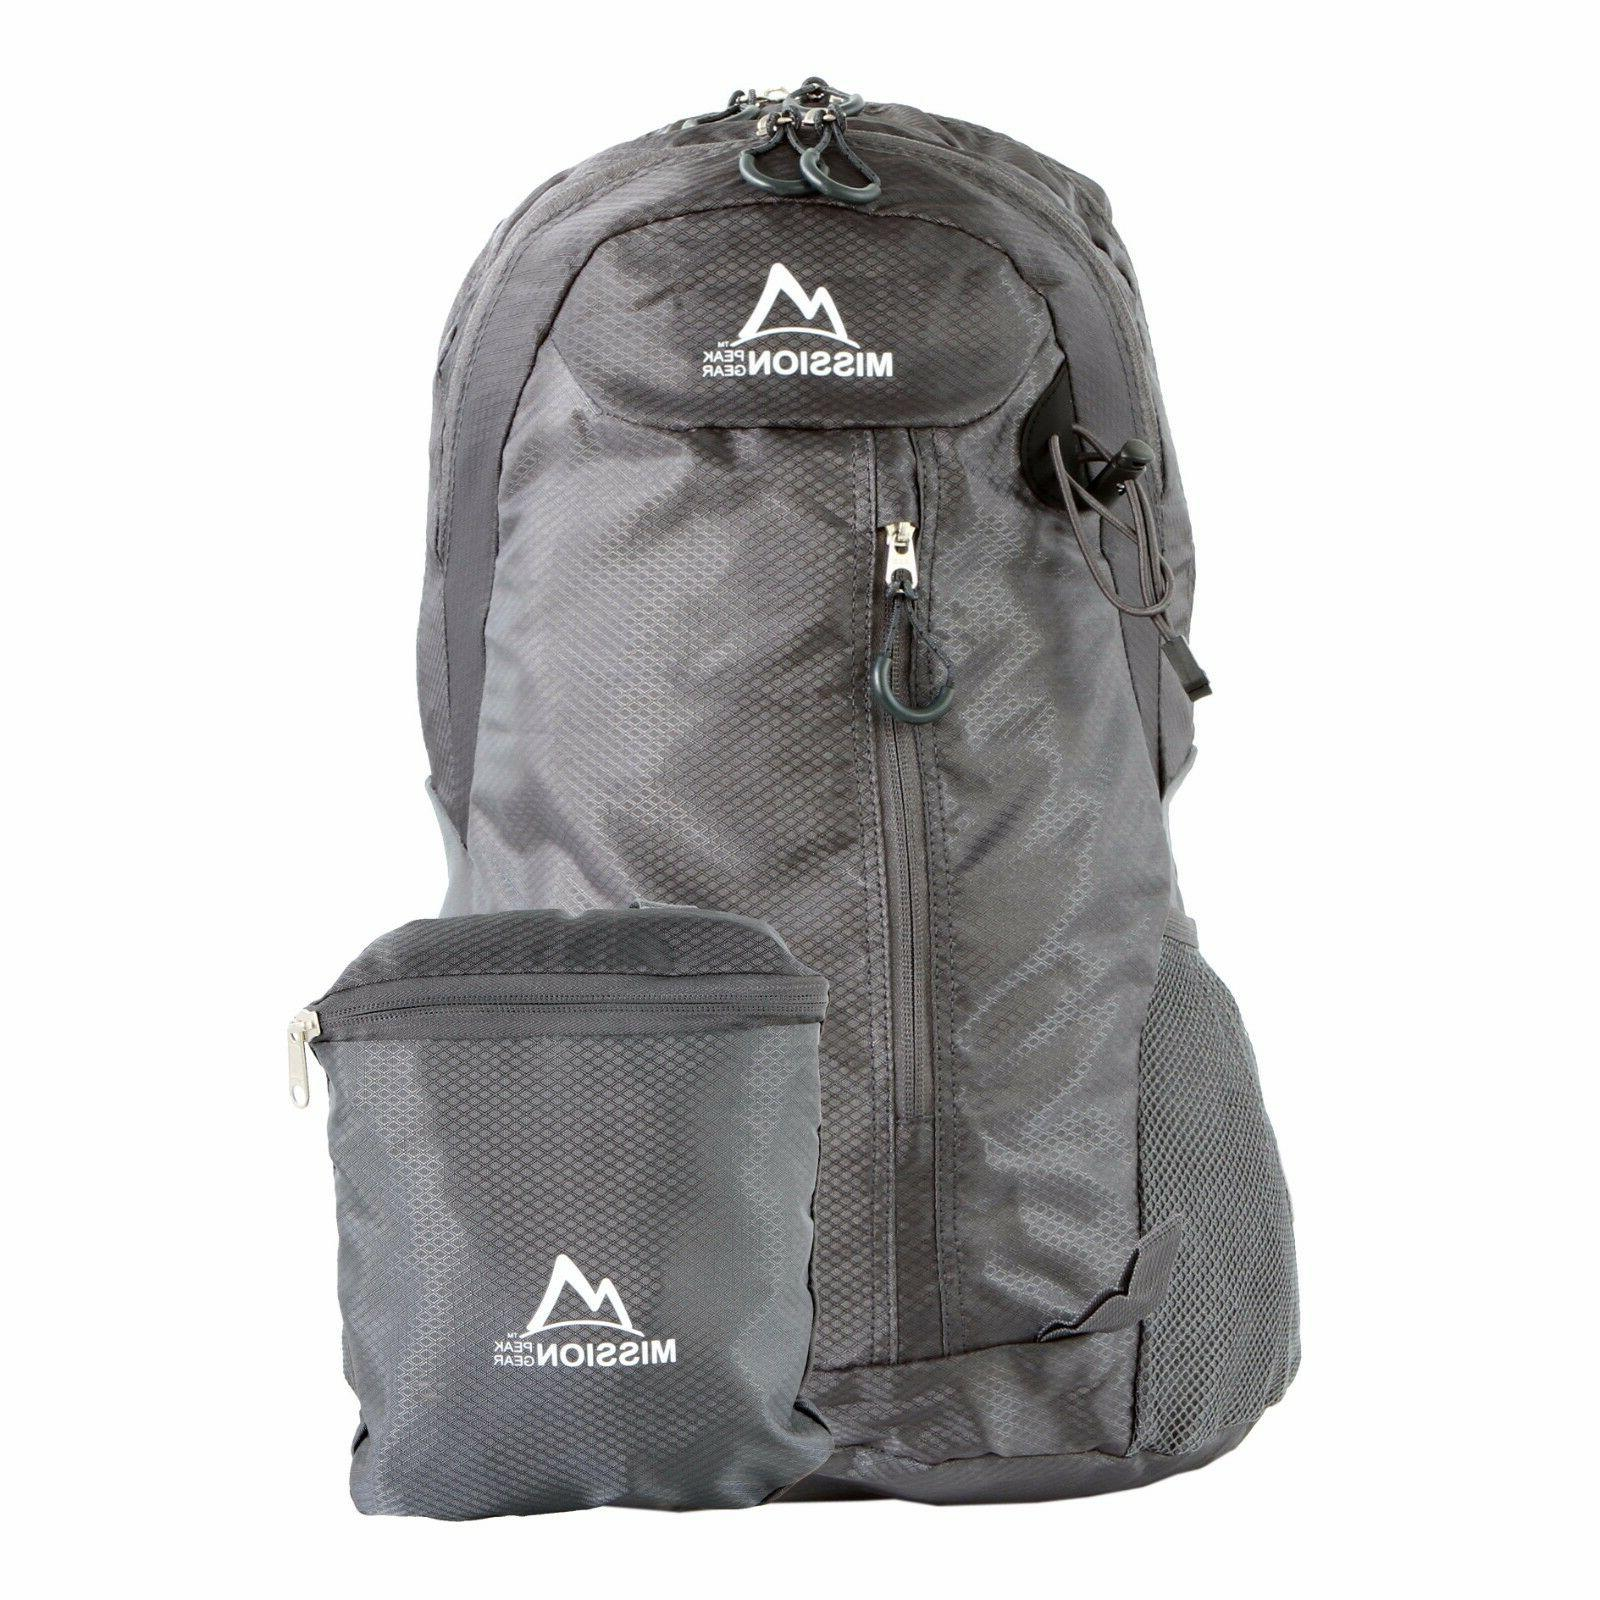 fast2100 30l foldable packable hiking backpack daypack